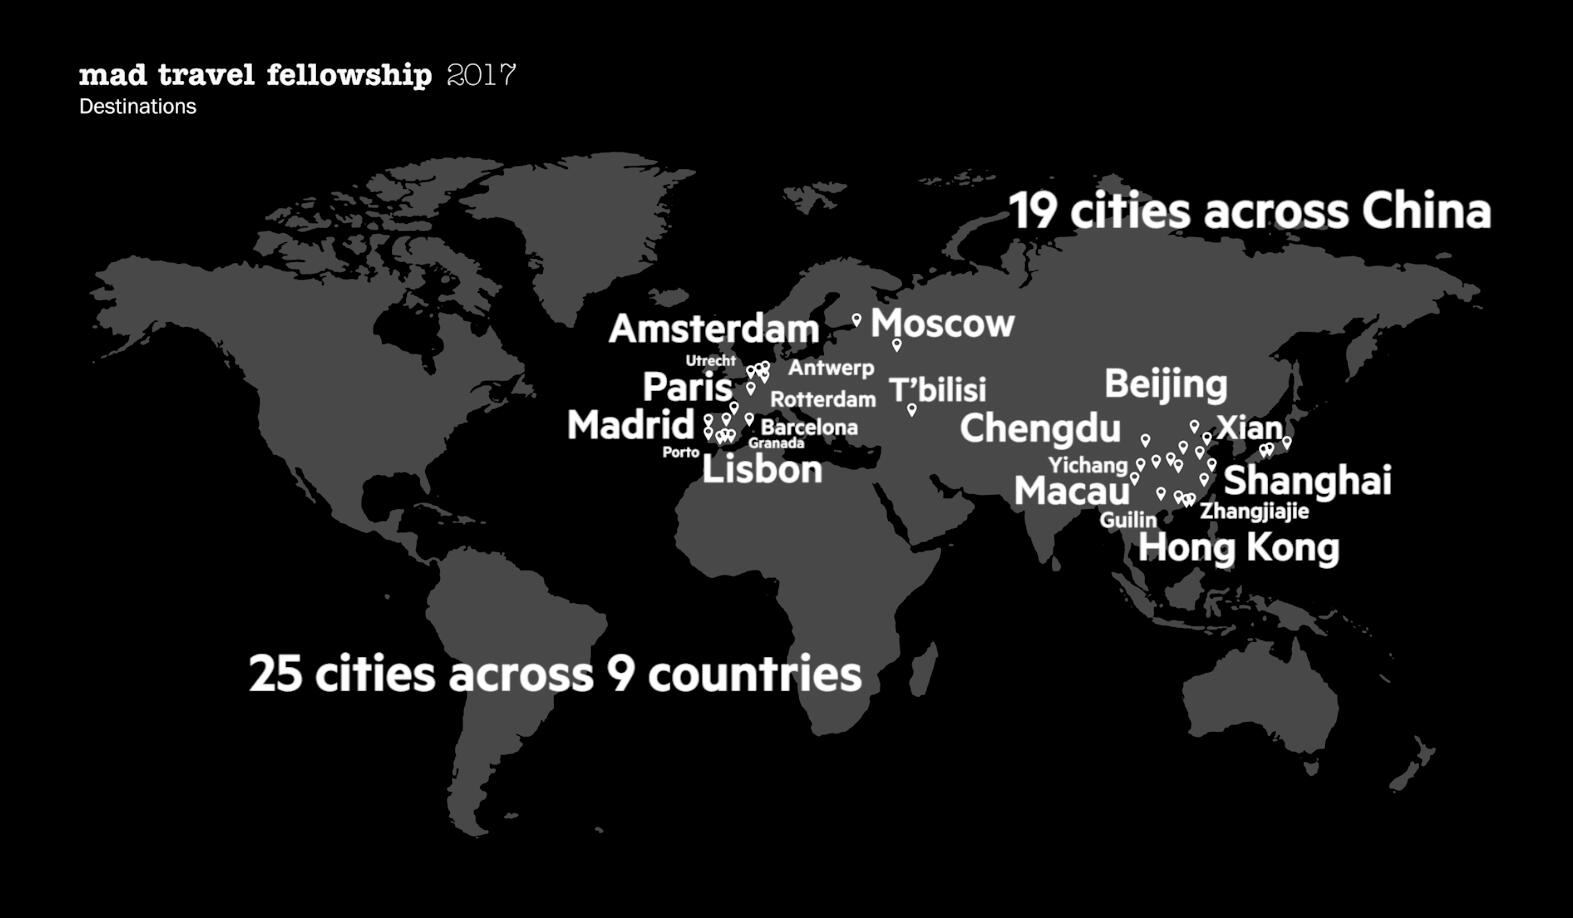 MAD_2017 Travel Fellowship Travel Map